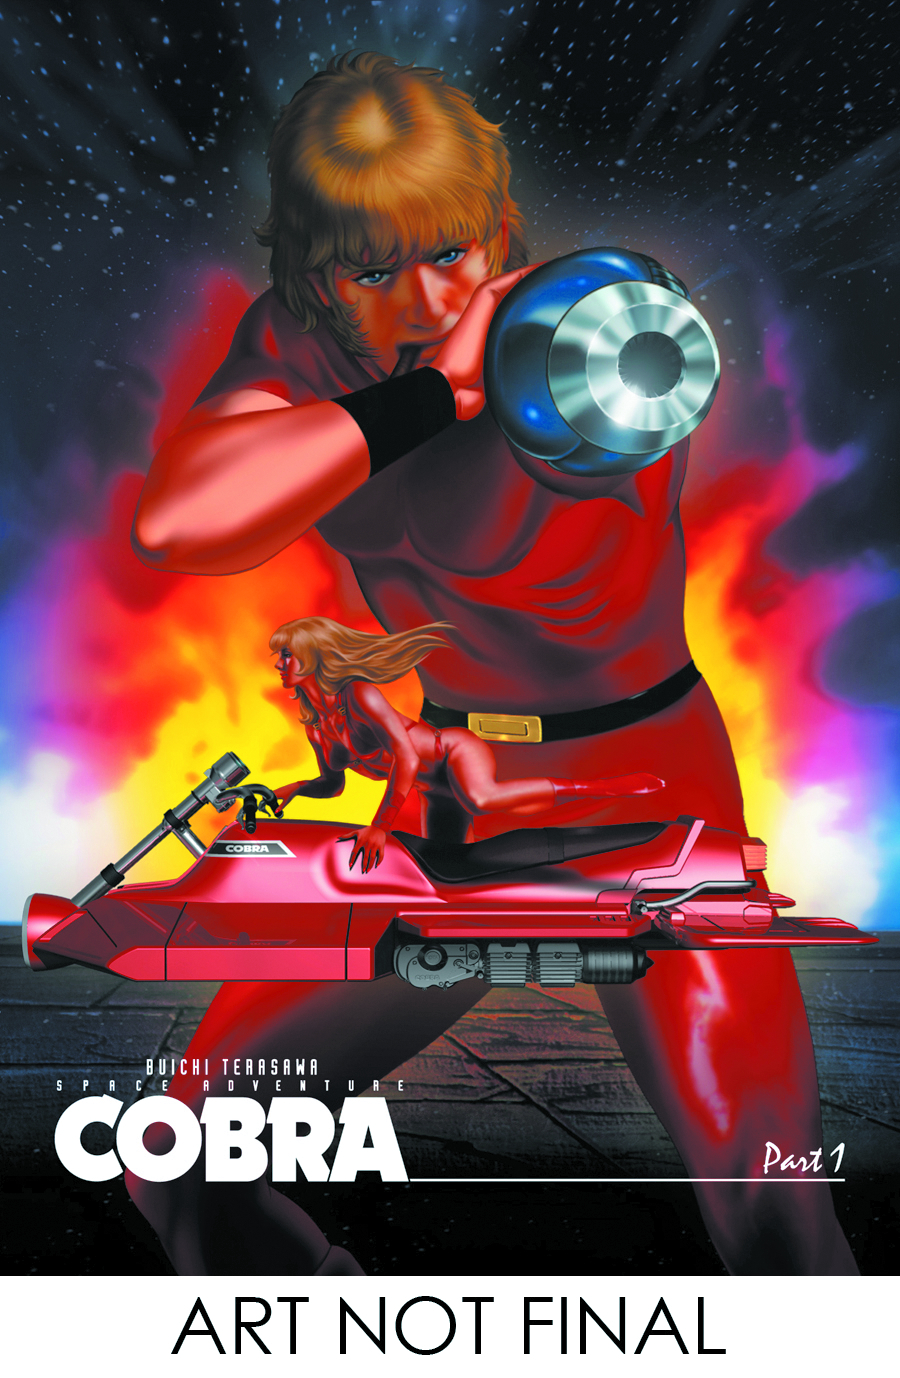 SPACE ADVENTURE COBRA DVD PT 01